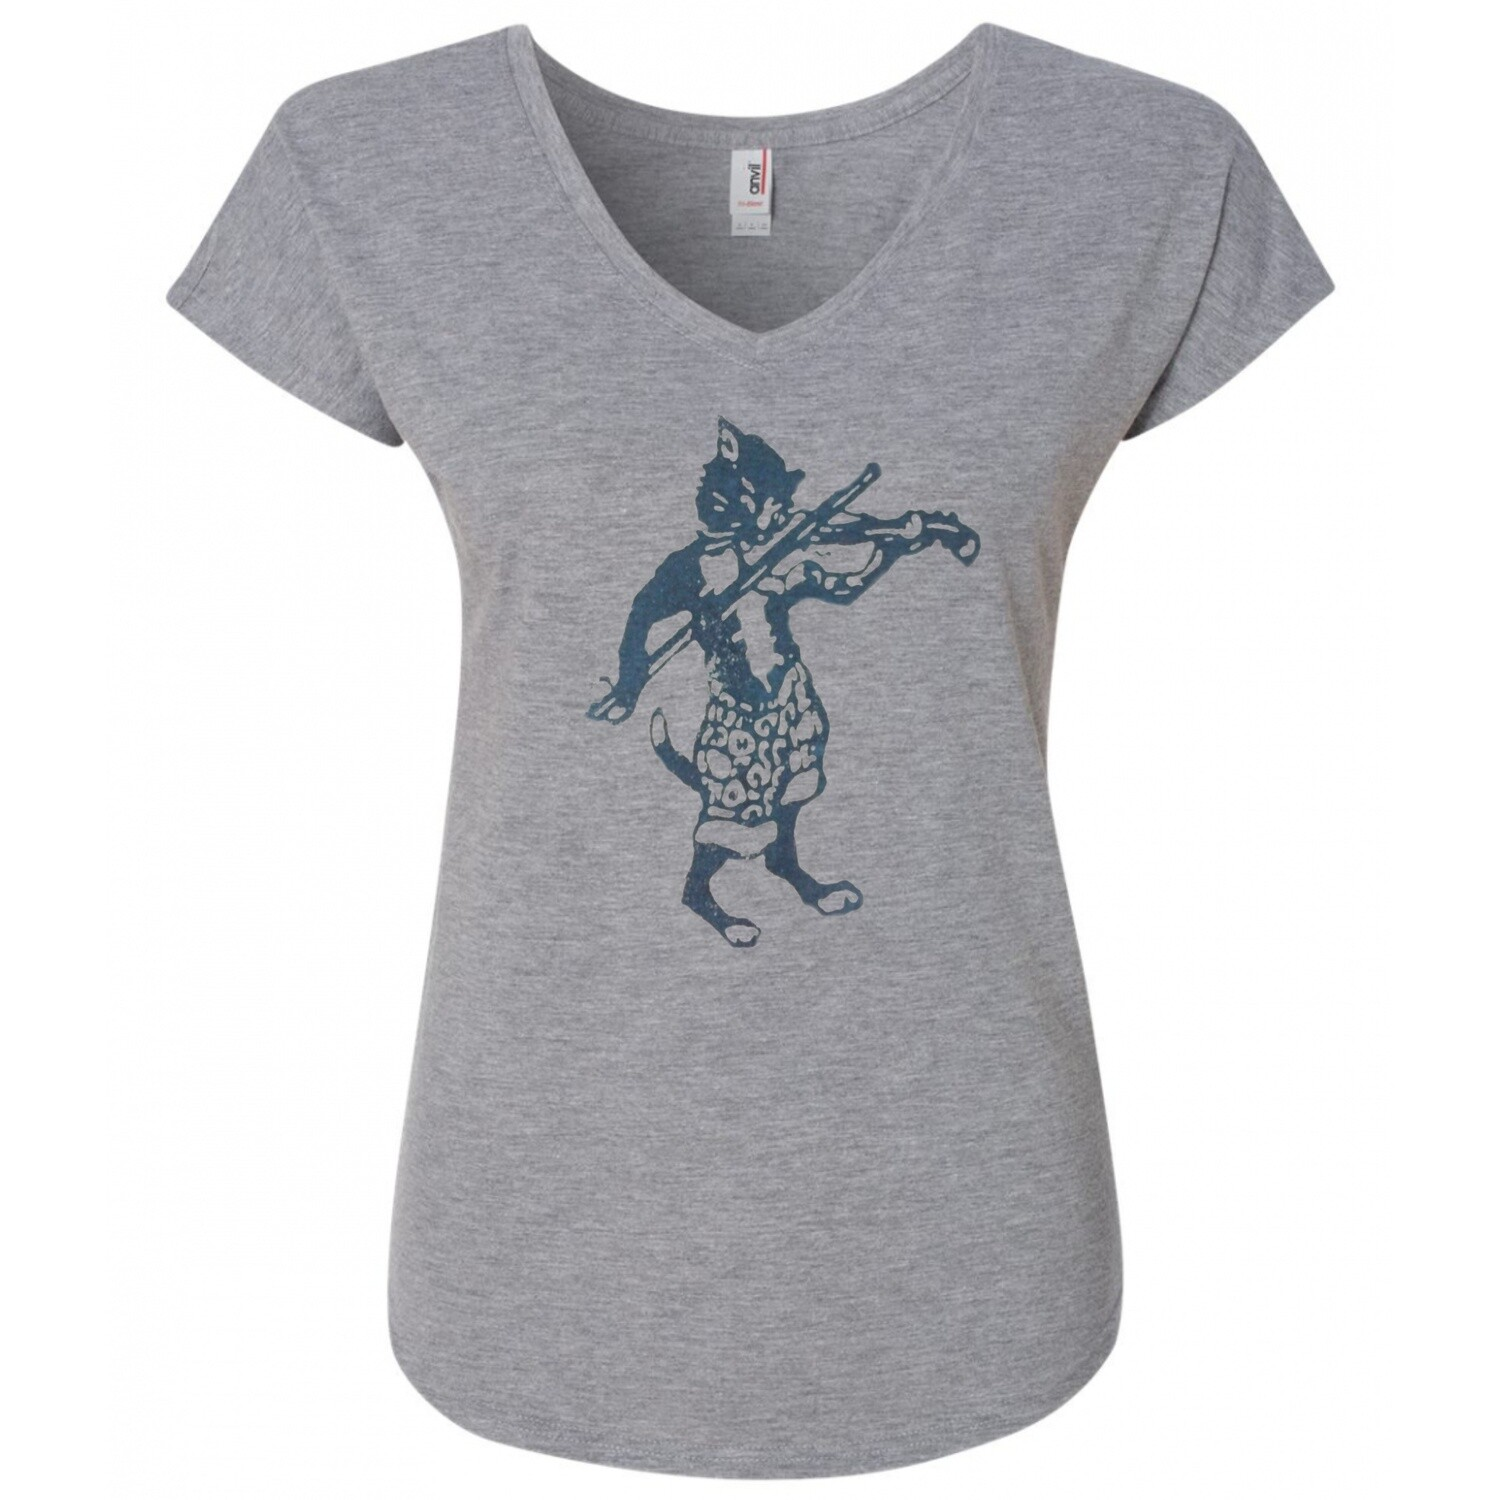 Women's Fiddle Cat T-shirt